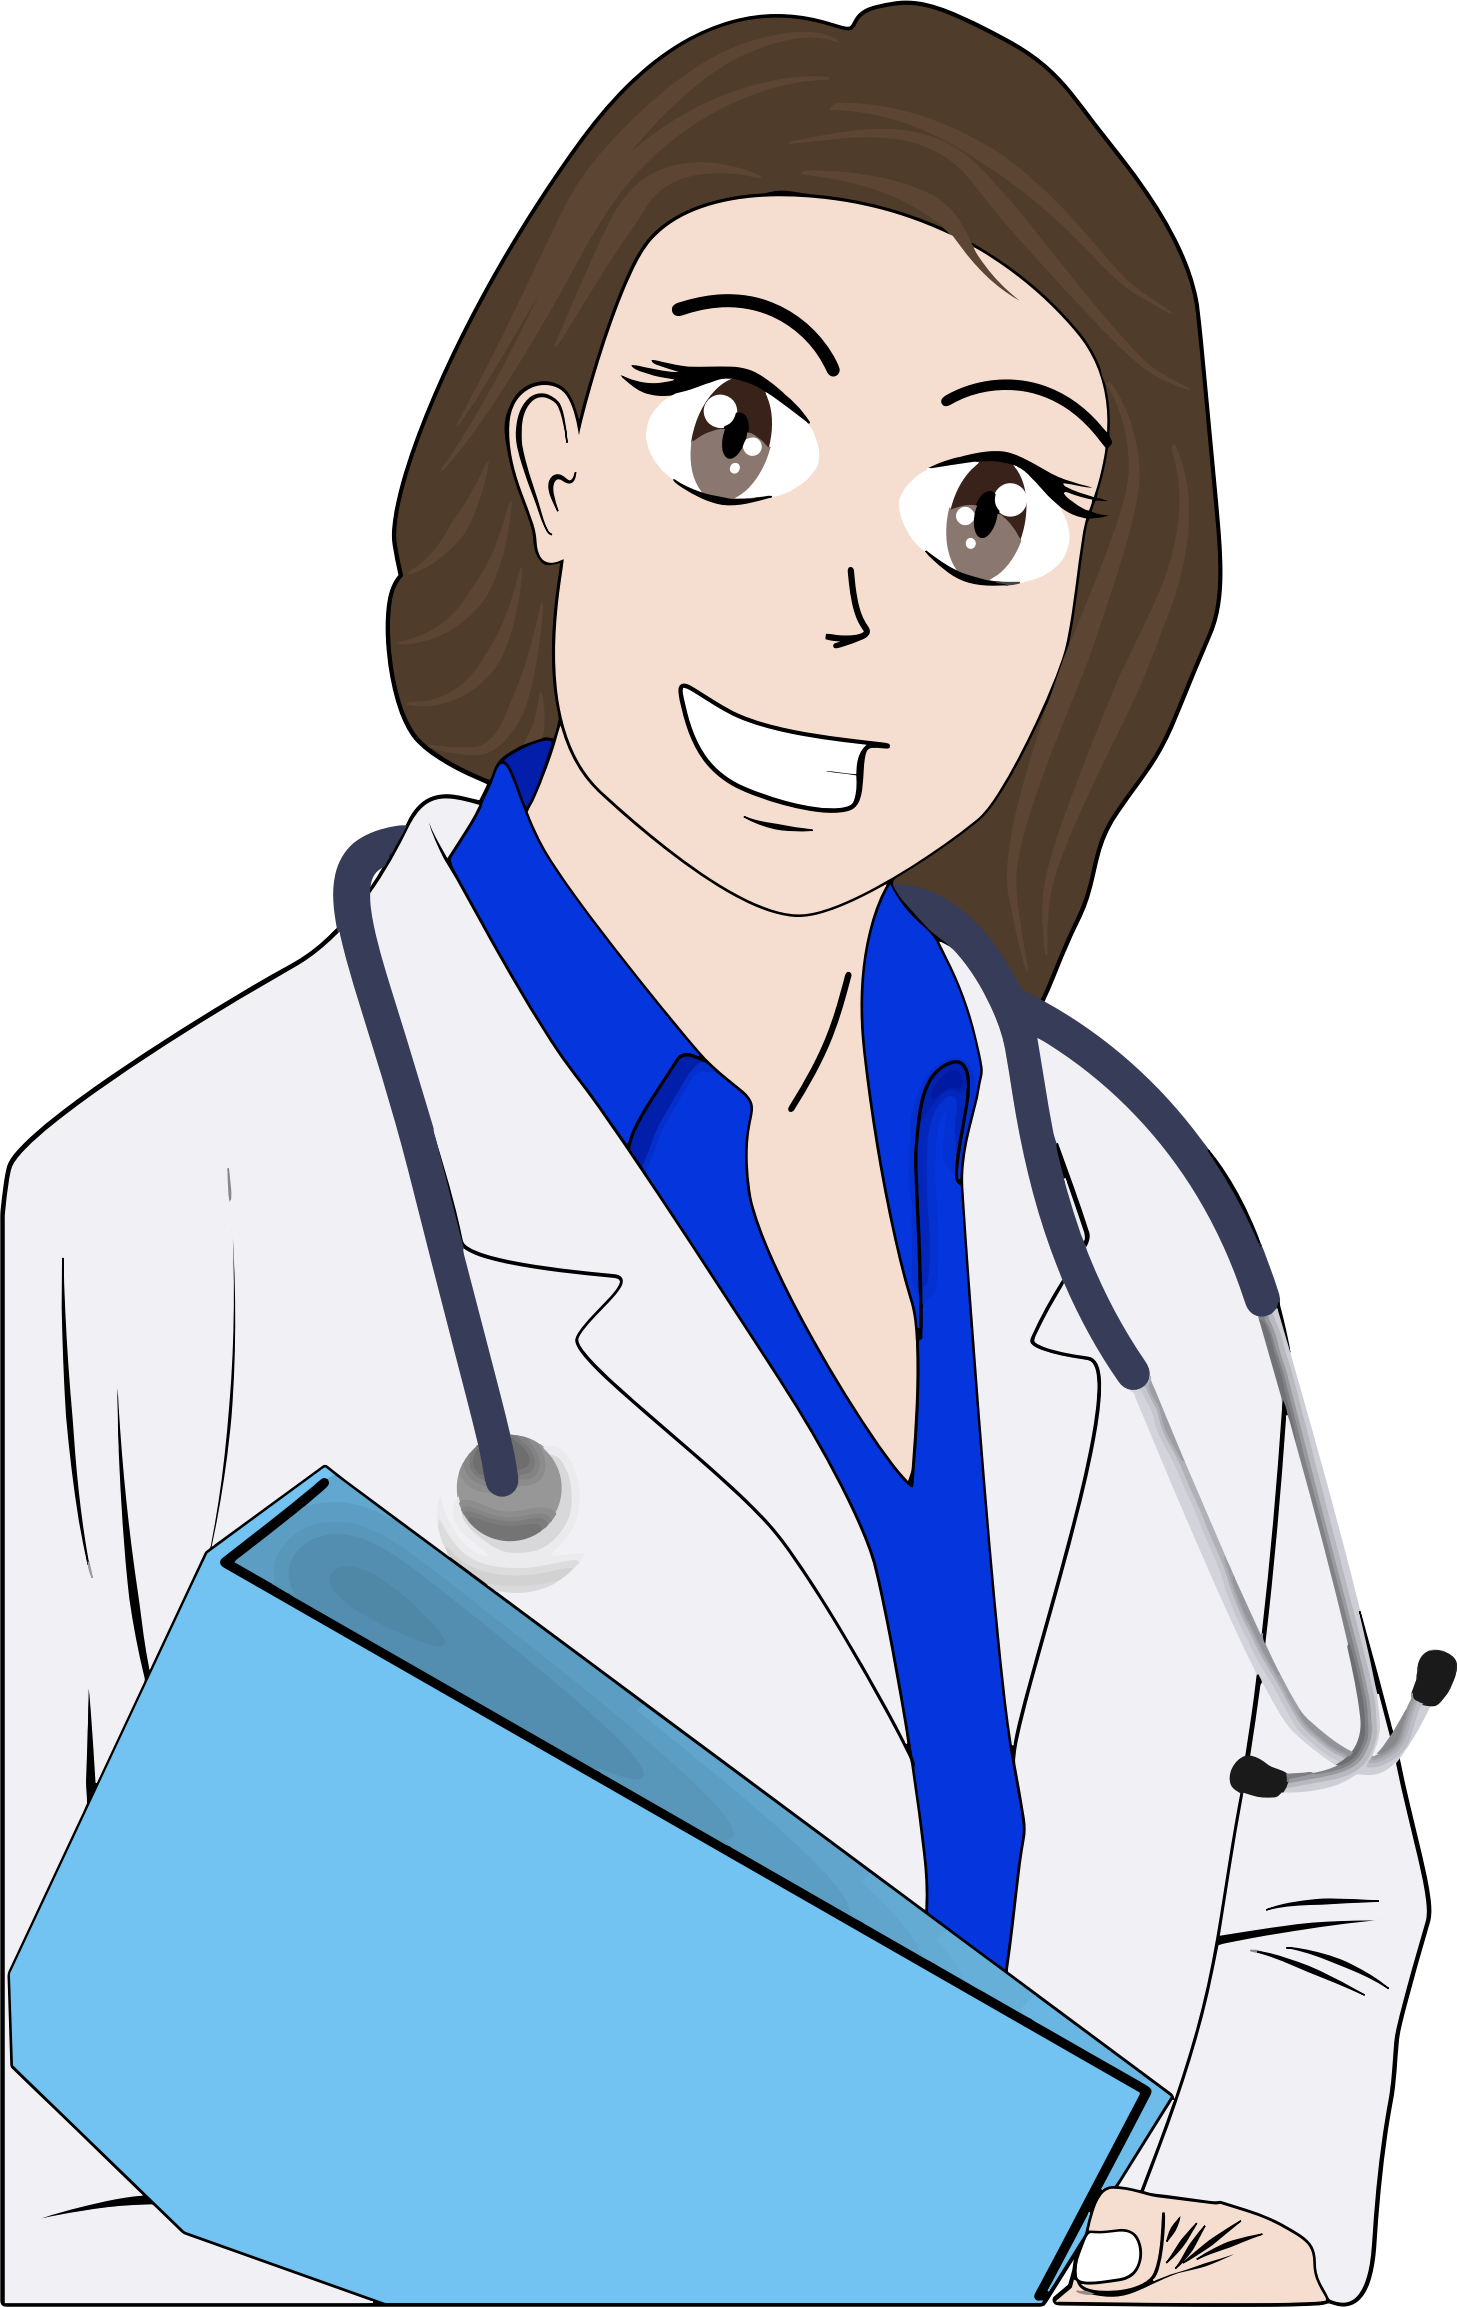 Cartoon female big image. Nursing clipart woman doctor